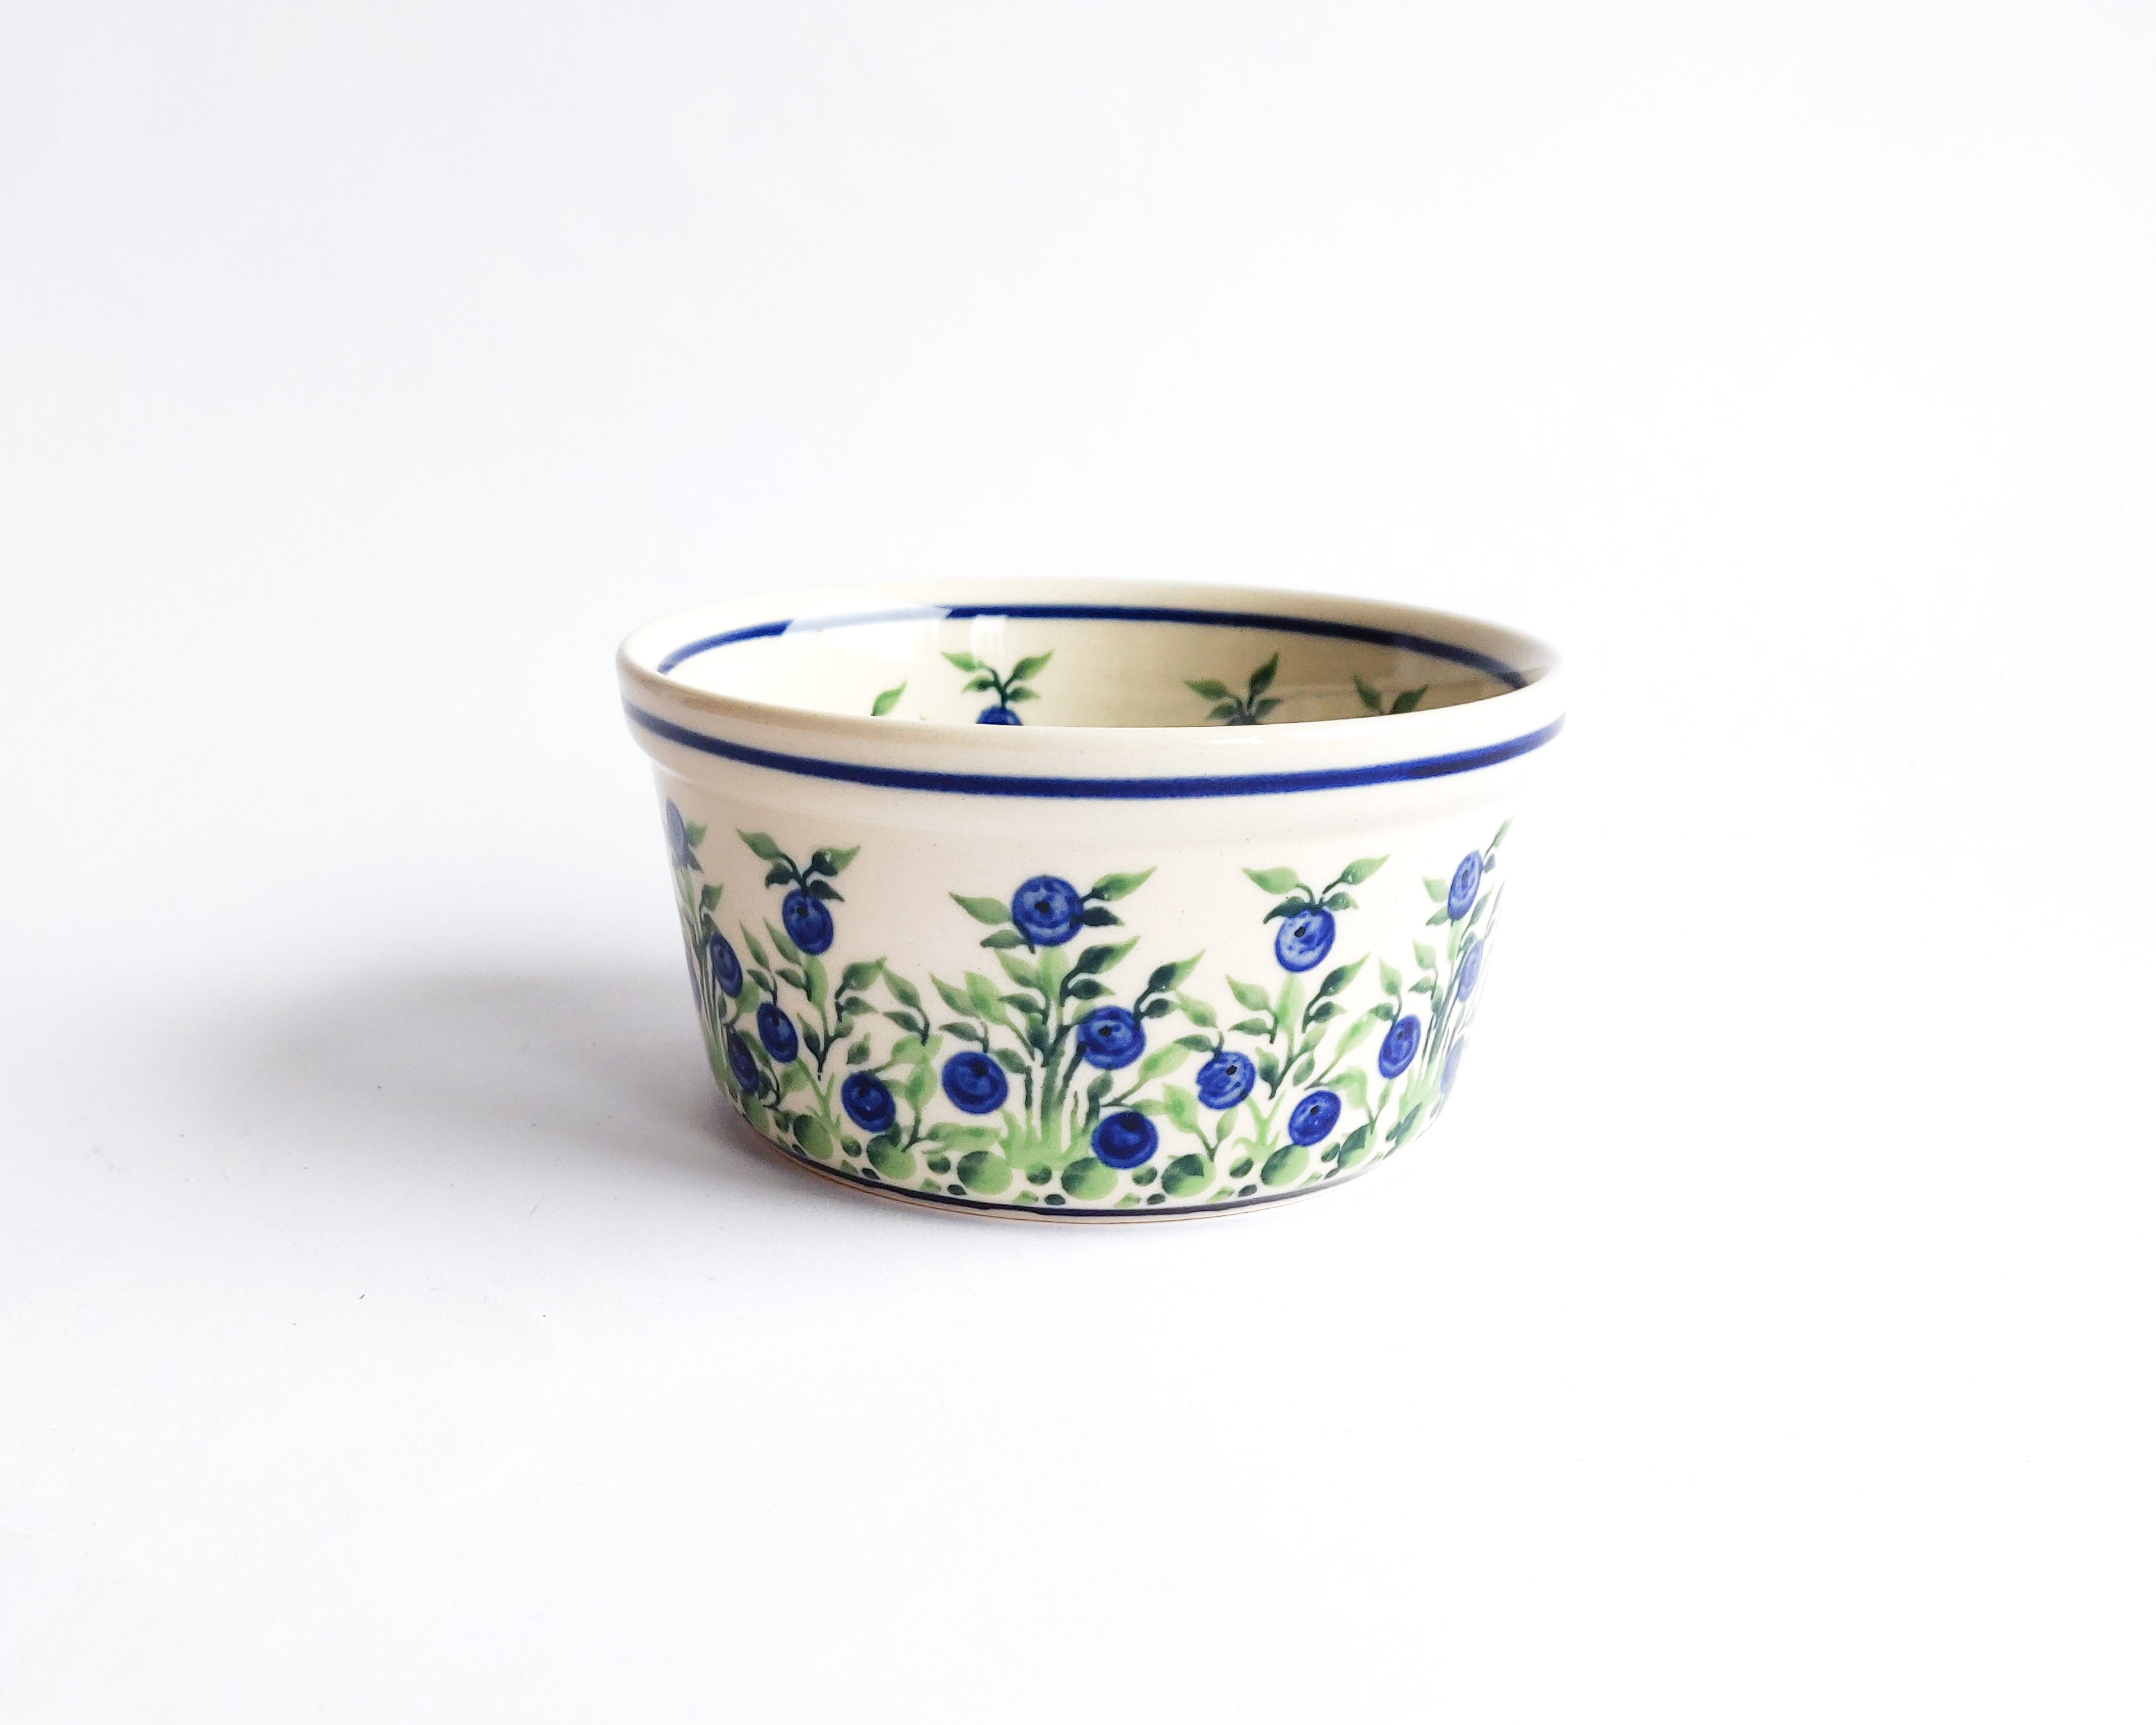 Ramekin/Dip Bowl - Medium